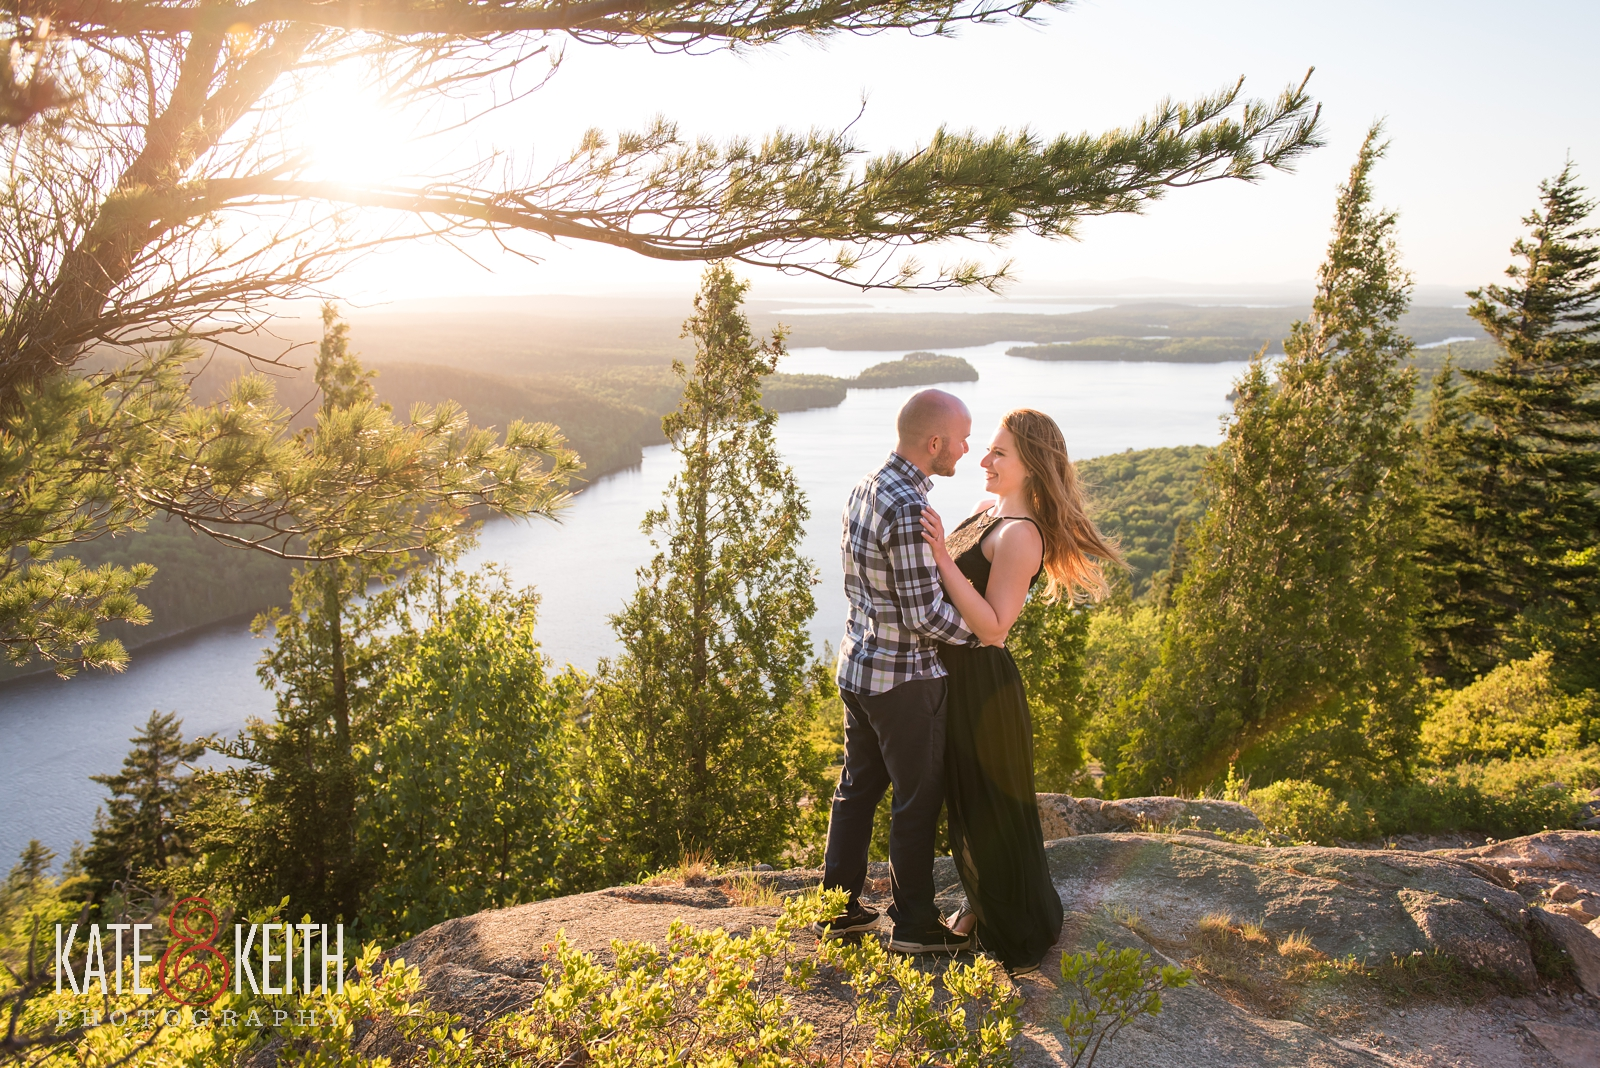 Acadia National Park, surprise propose, surprise engagement, Mount Desert Island, MDI, marriage proposal, engagement, engaged, wedding proposal, sunset, summer, summertime, engagement photos